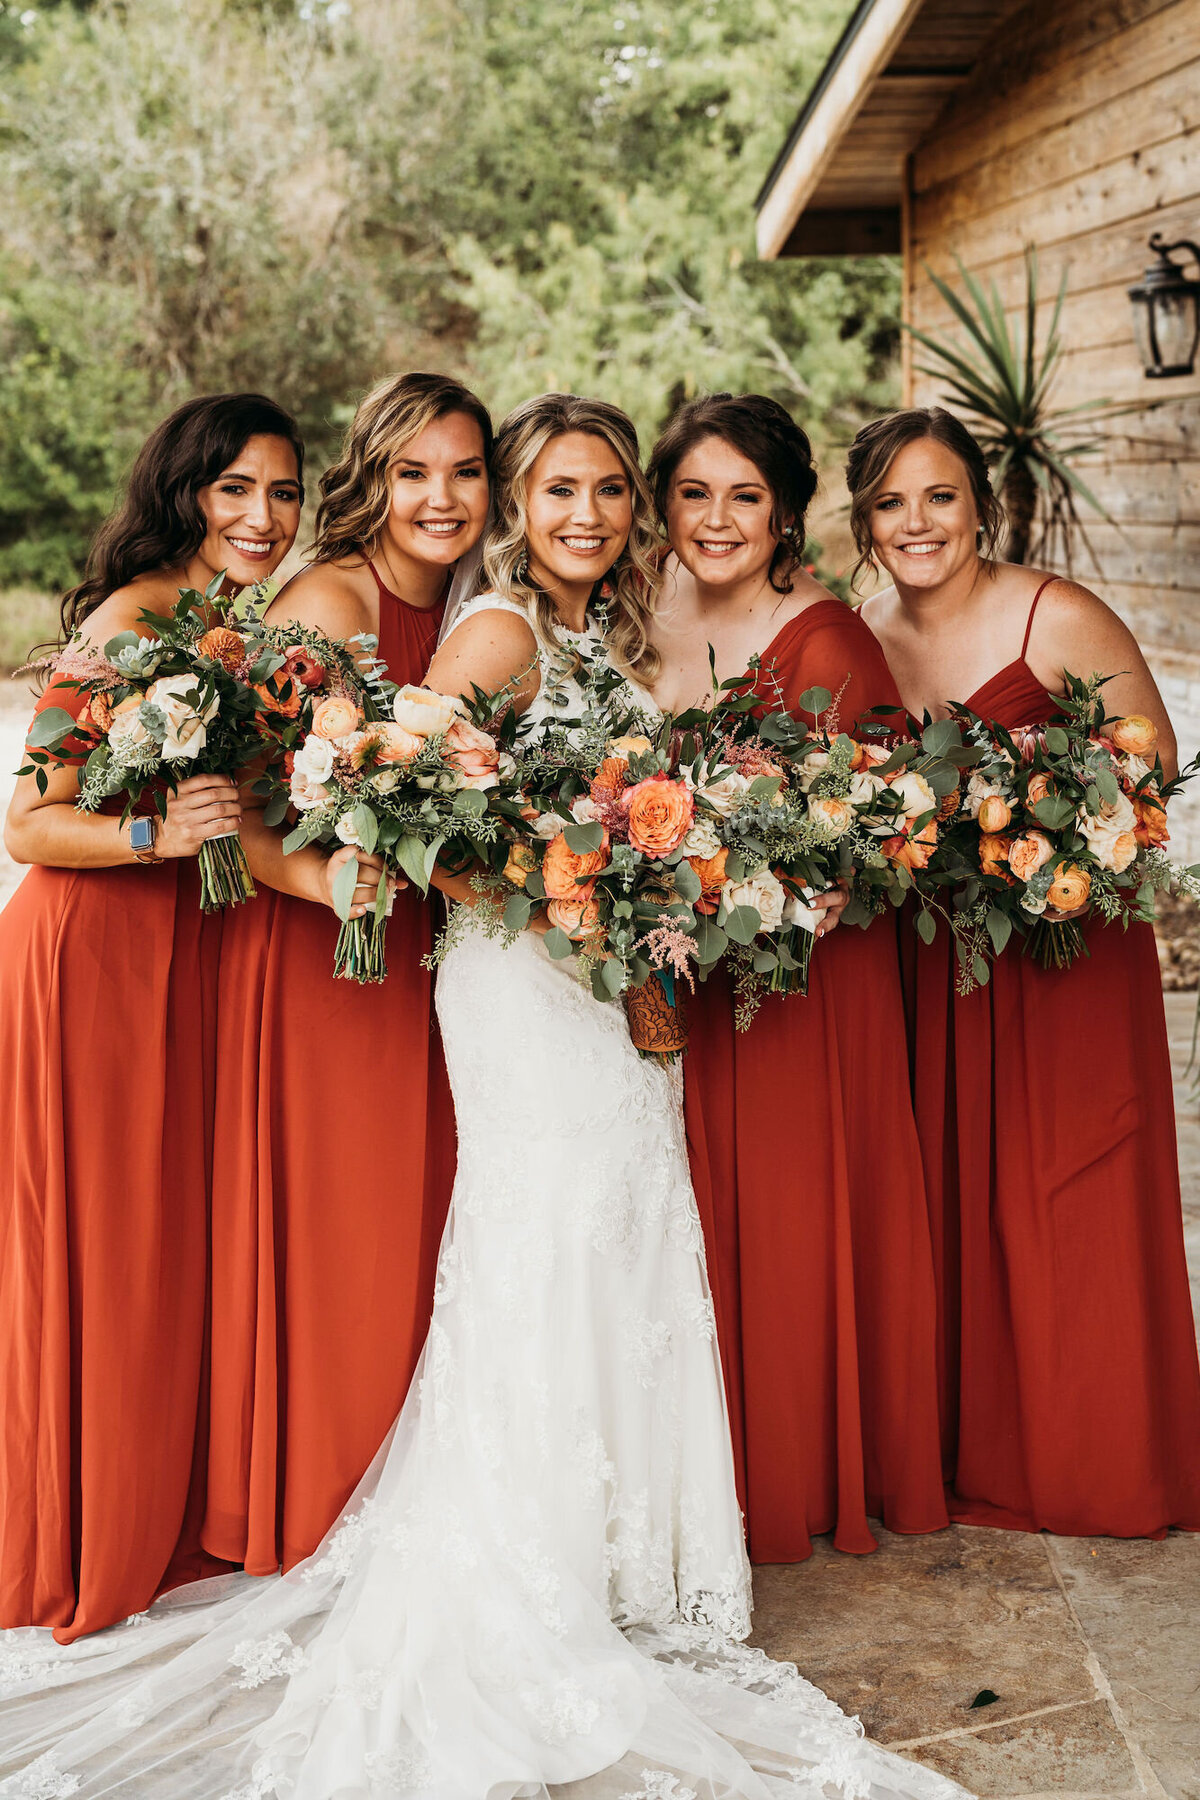 Bride with bridesmaids in red orange dresses and orange florals